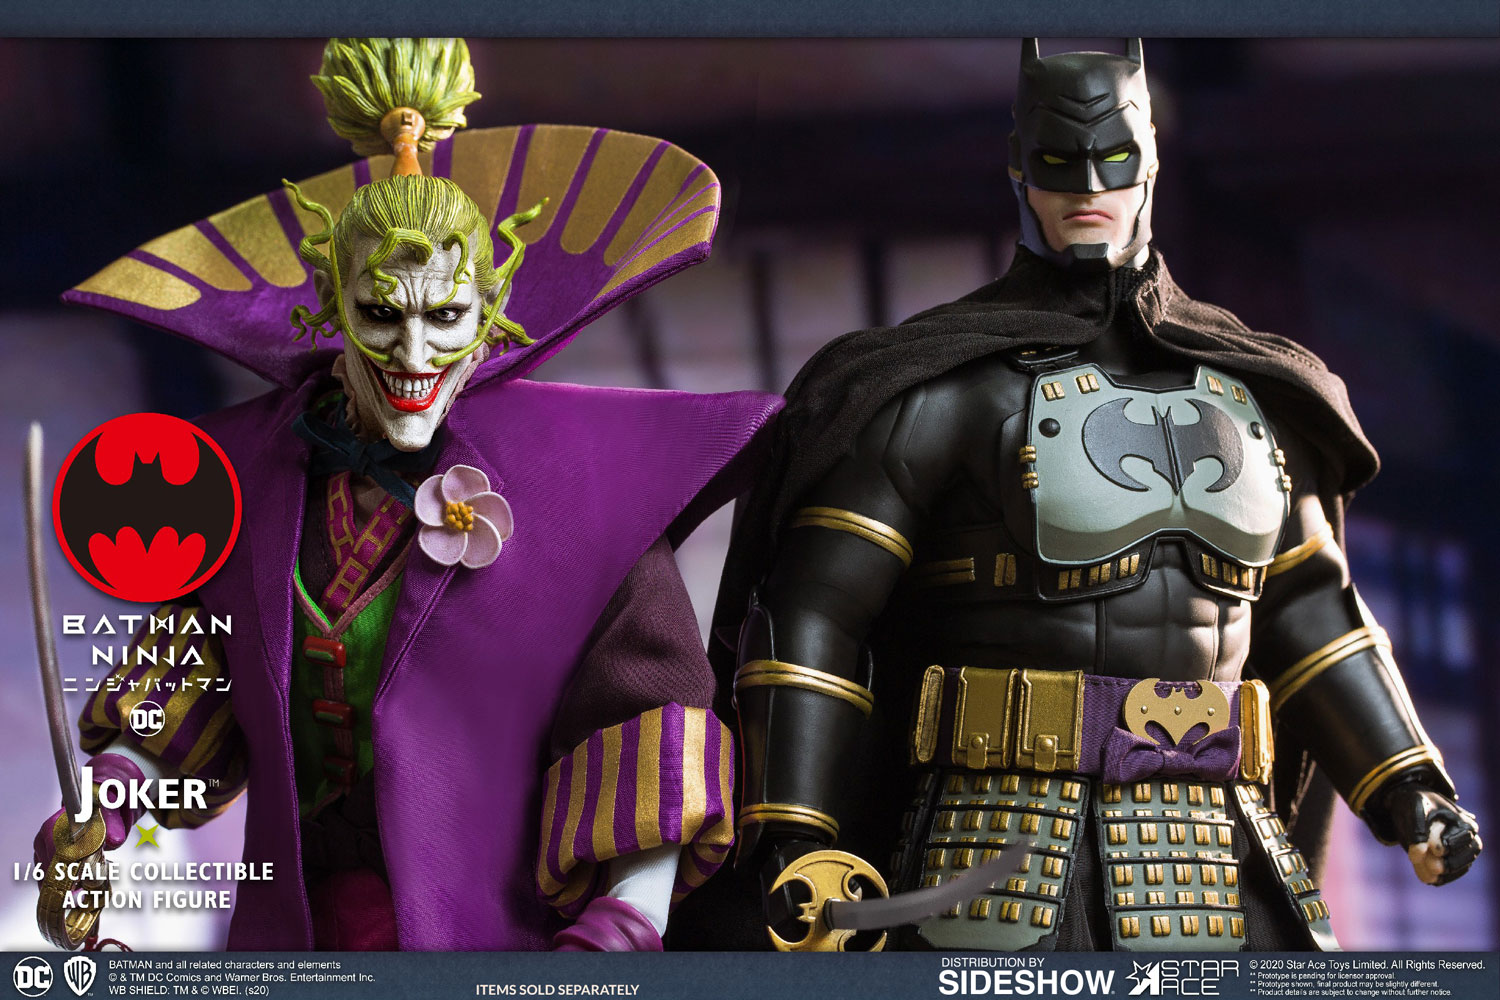 Batman Ninja Lord Joker Sixth Scale Figure By Star Ace Toys Sideshow Collectibles